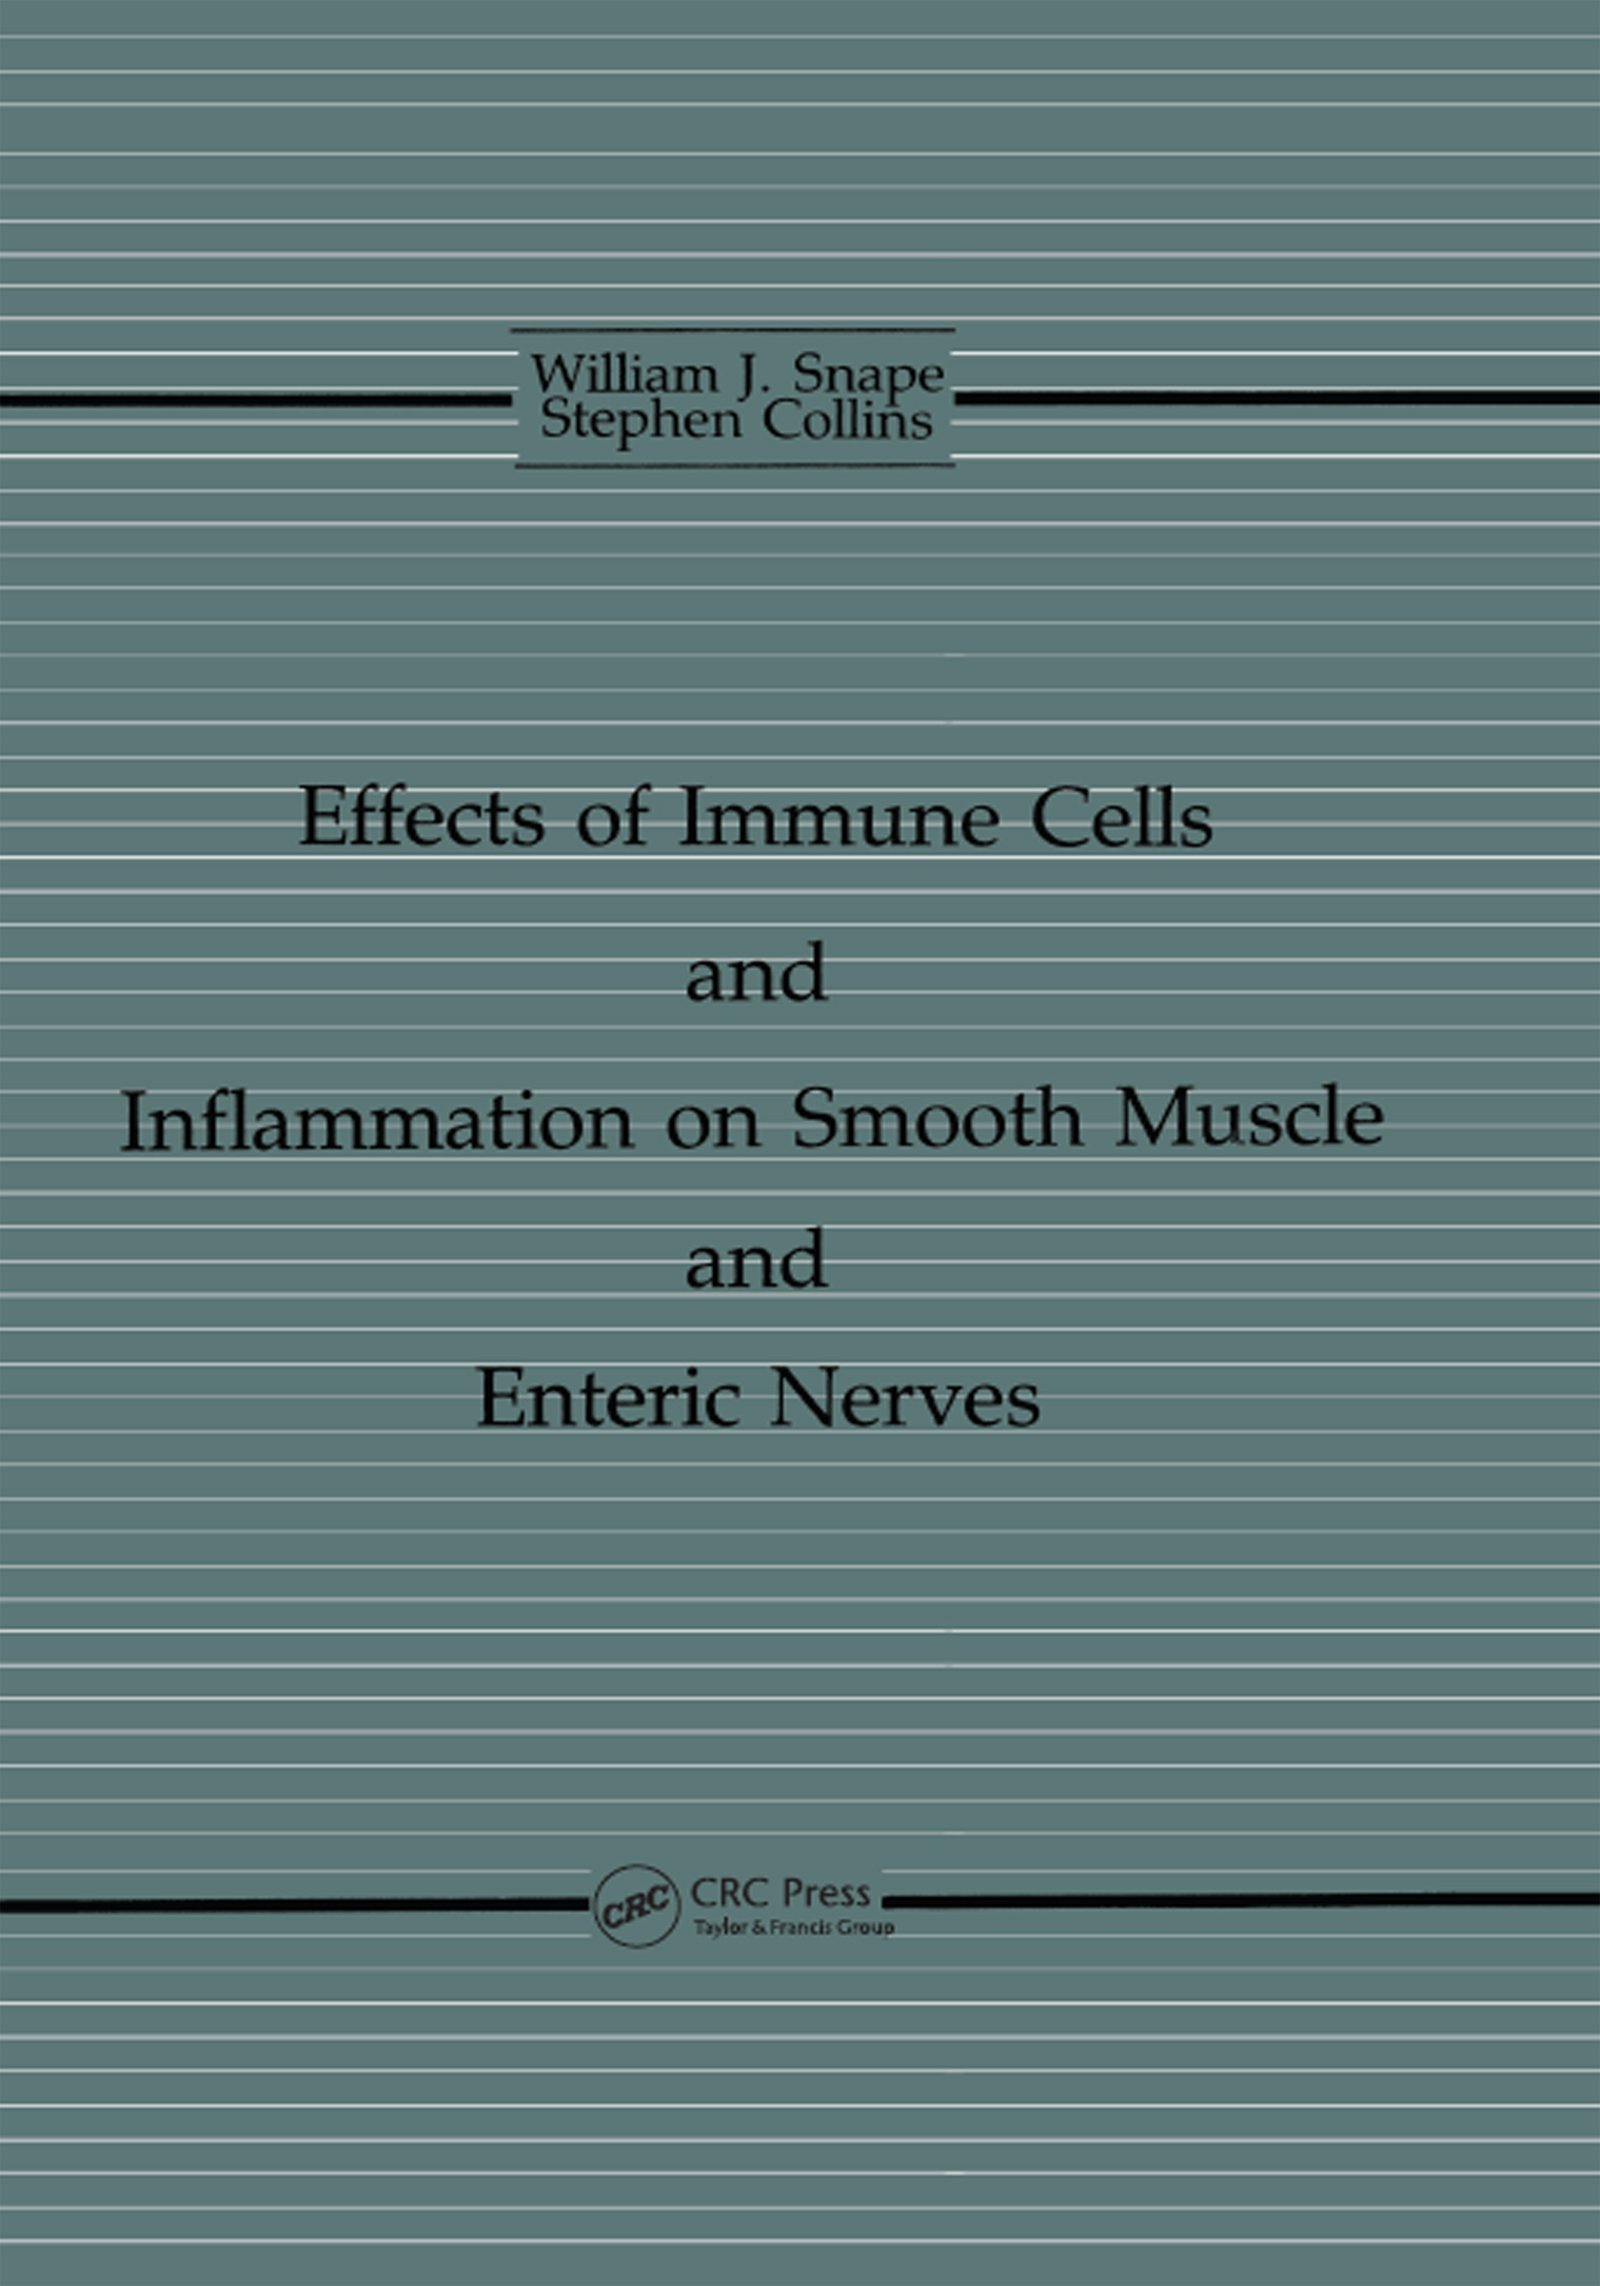 The Effects of Immune Cells and Inflammation On Smooth Muscle and Enteric Nerves book cover